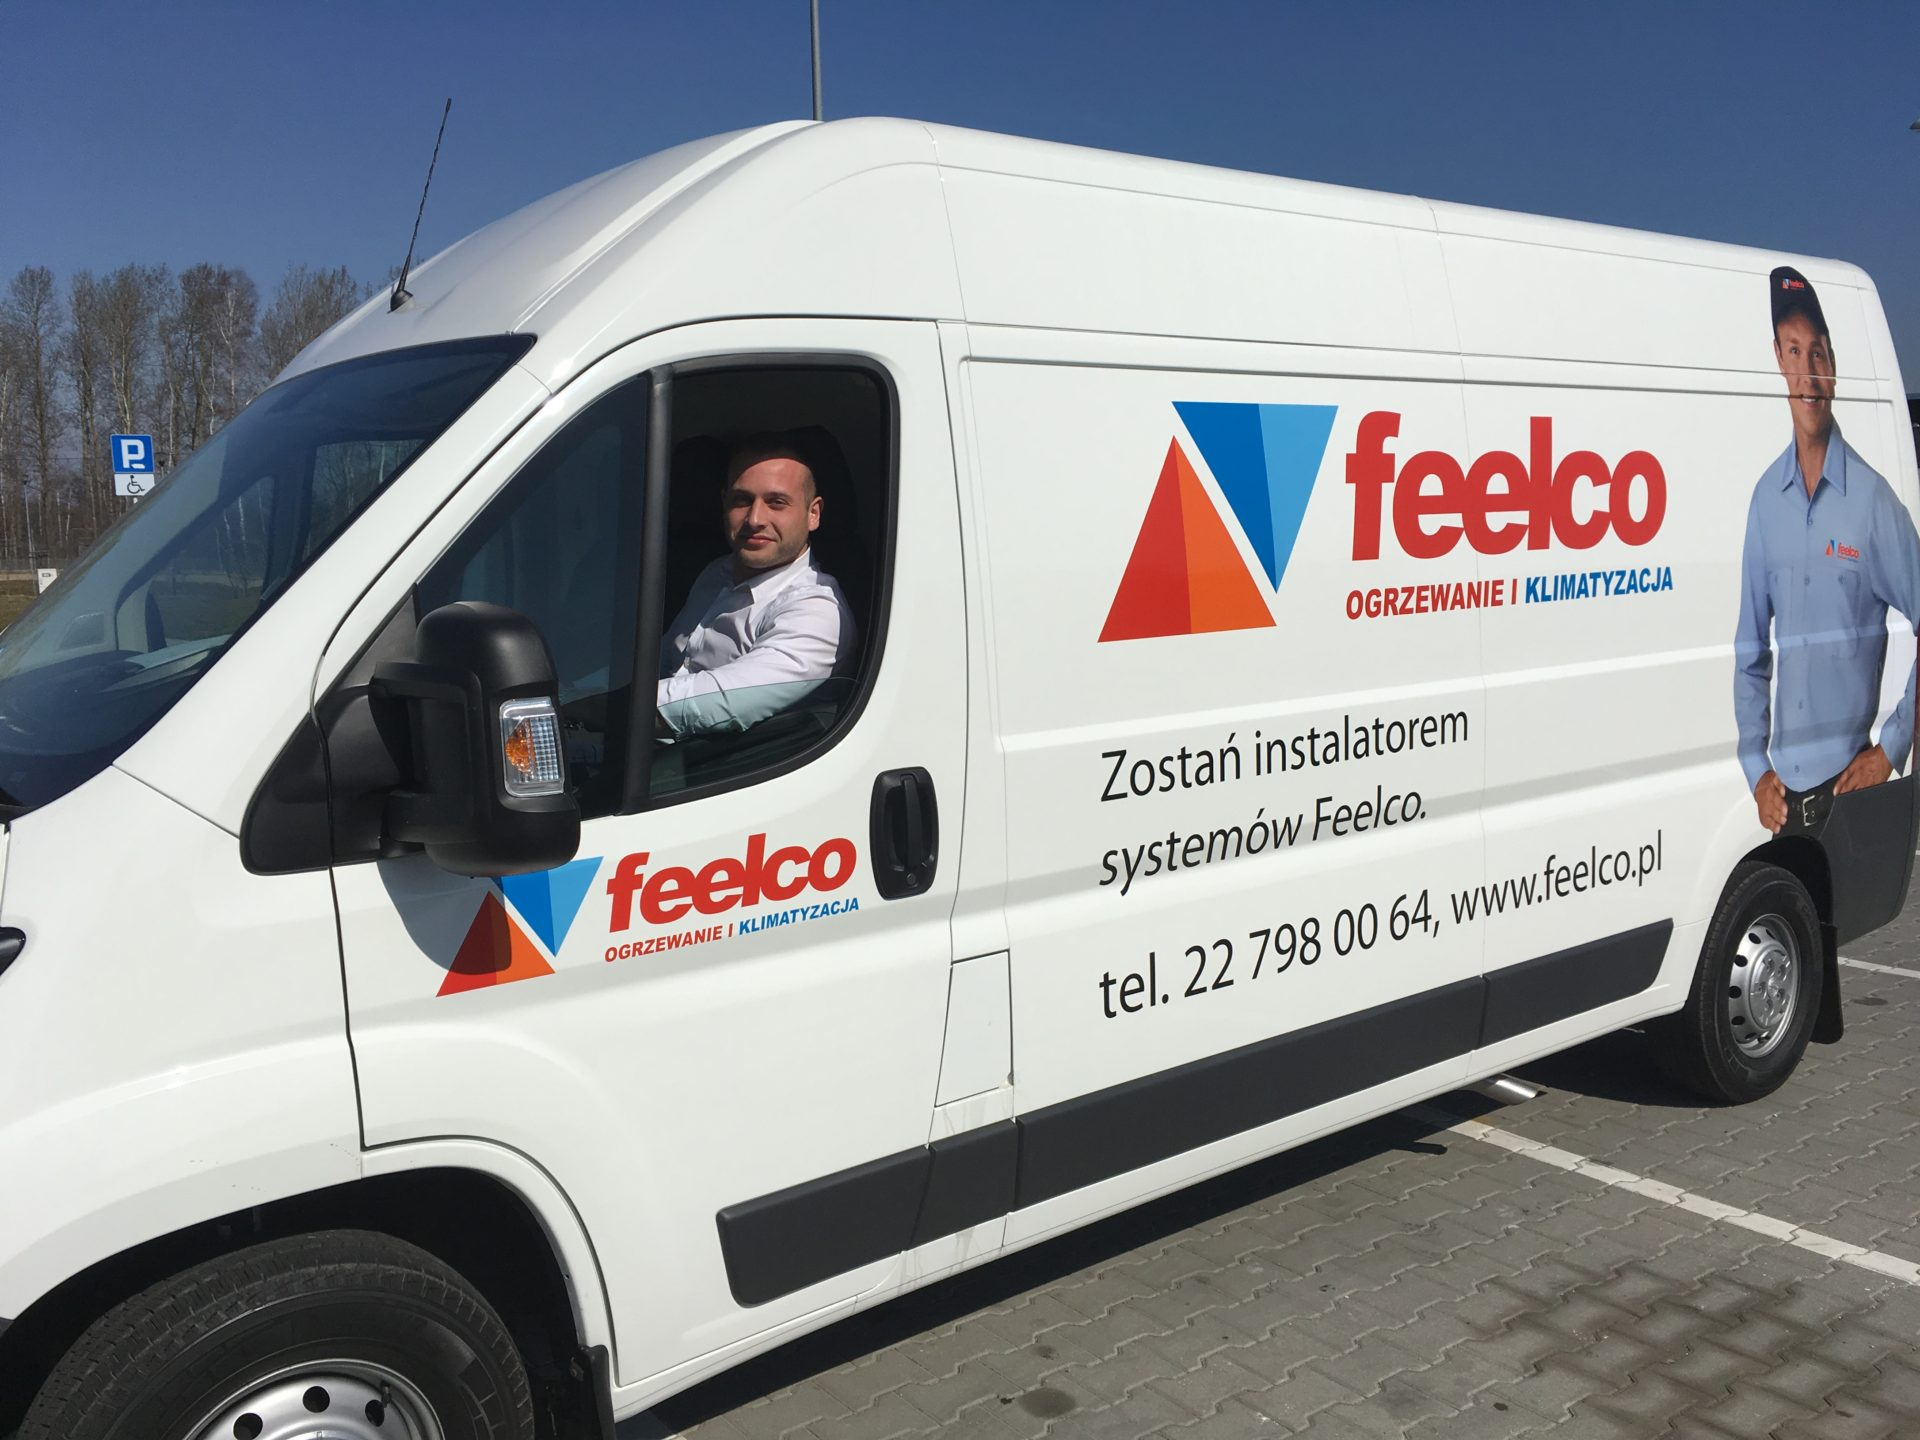 feelco demo van